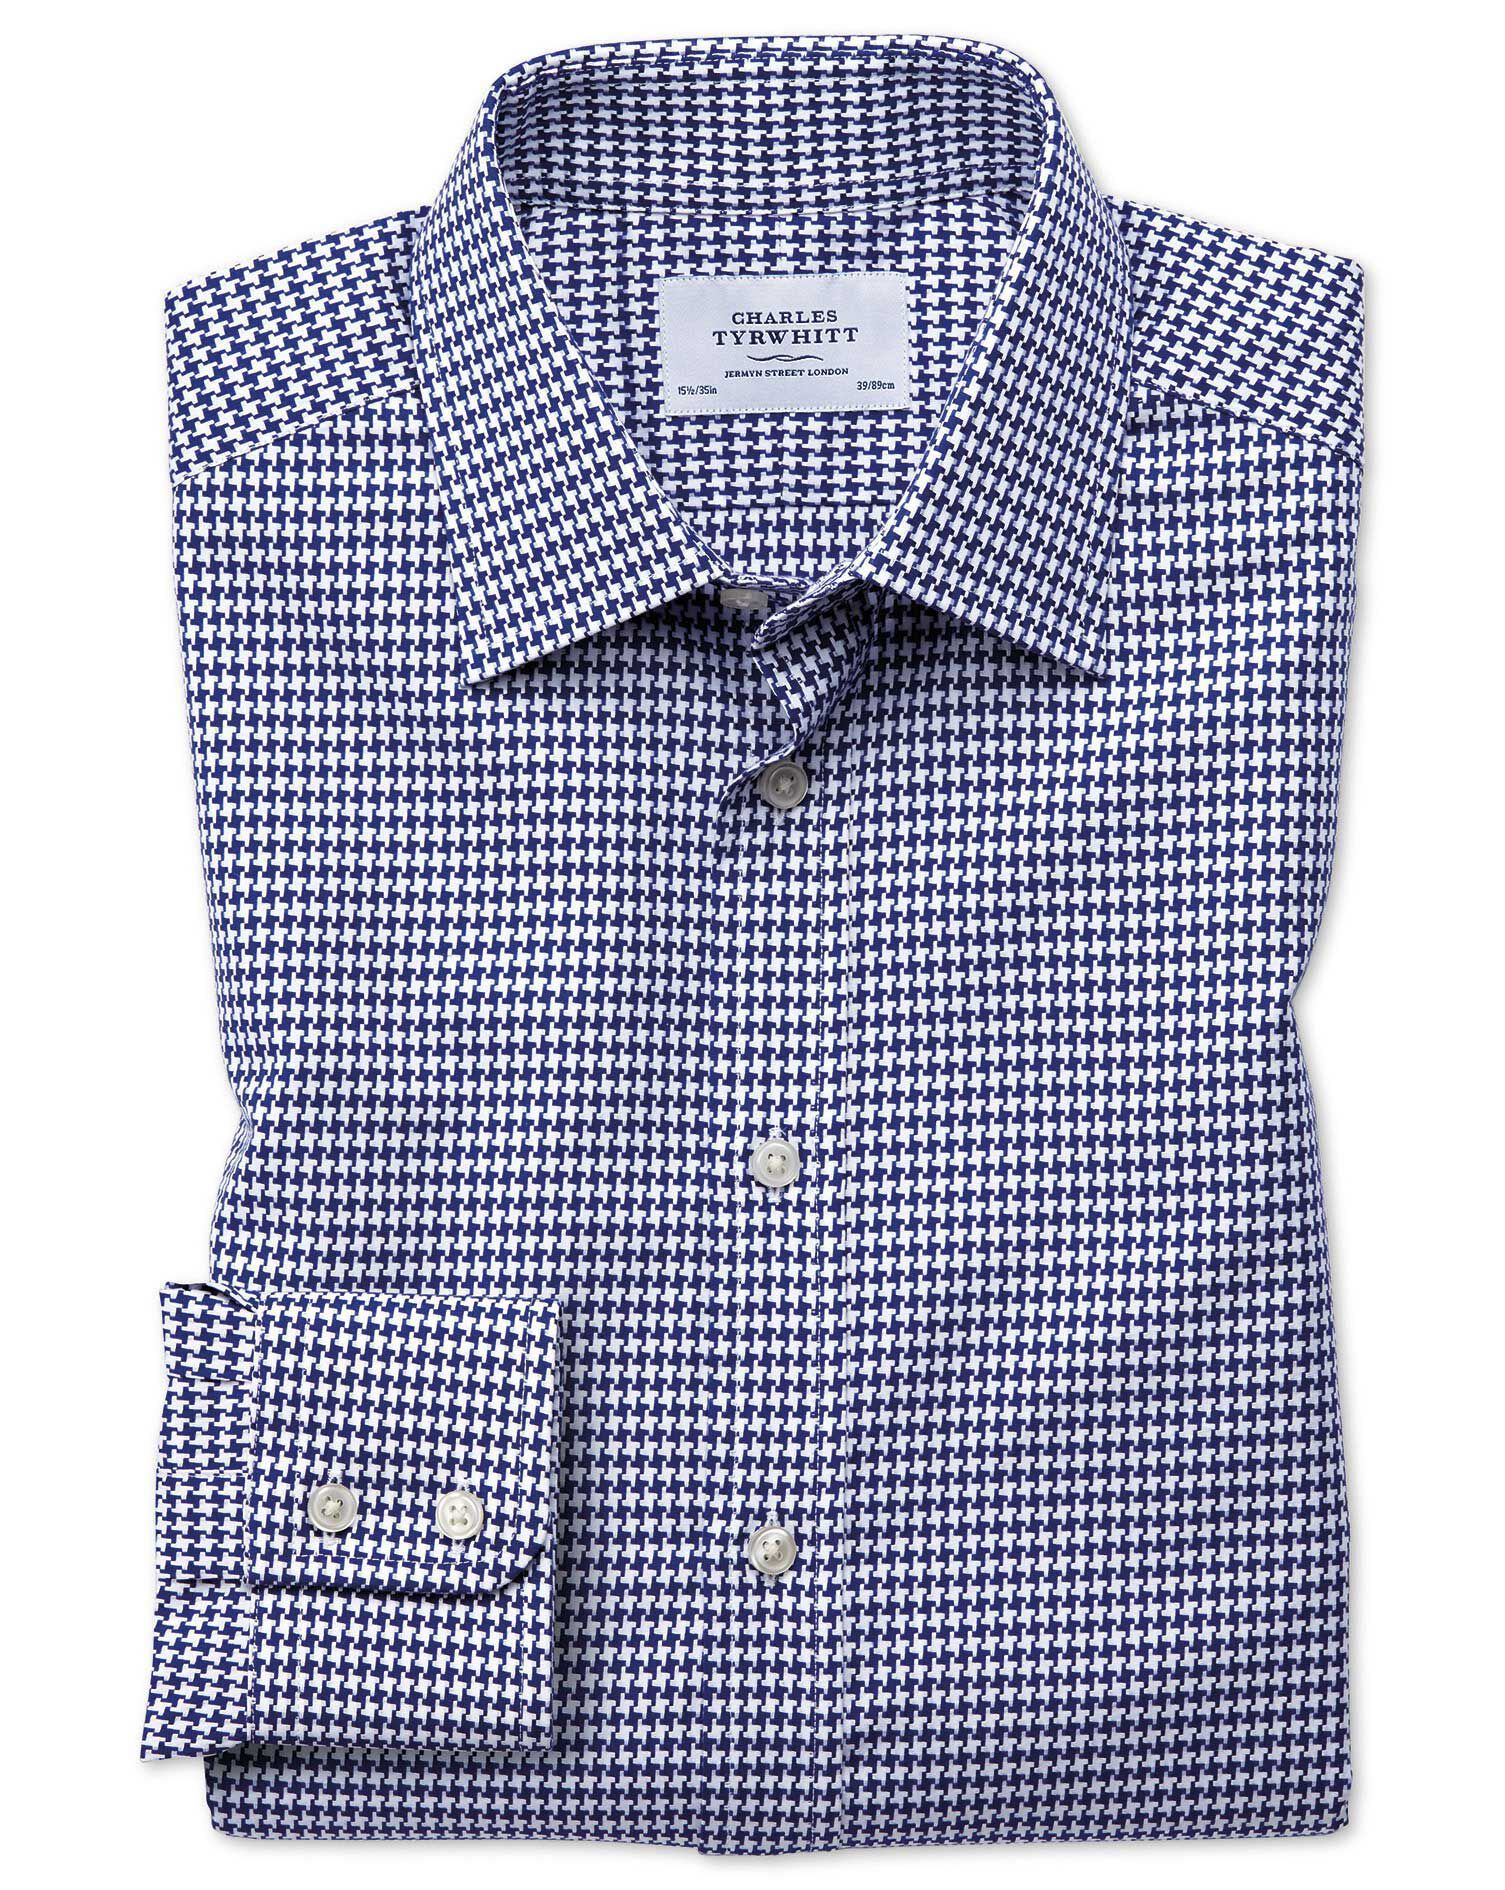 Slim Fit Large Puppytooth Blue Cotton Formal Shirt Single Cuff Size 16/36 by Charles Tyrwhitt